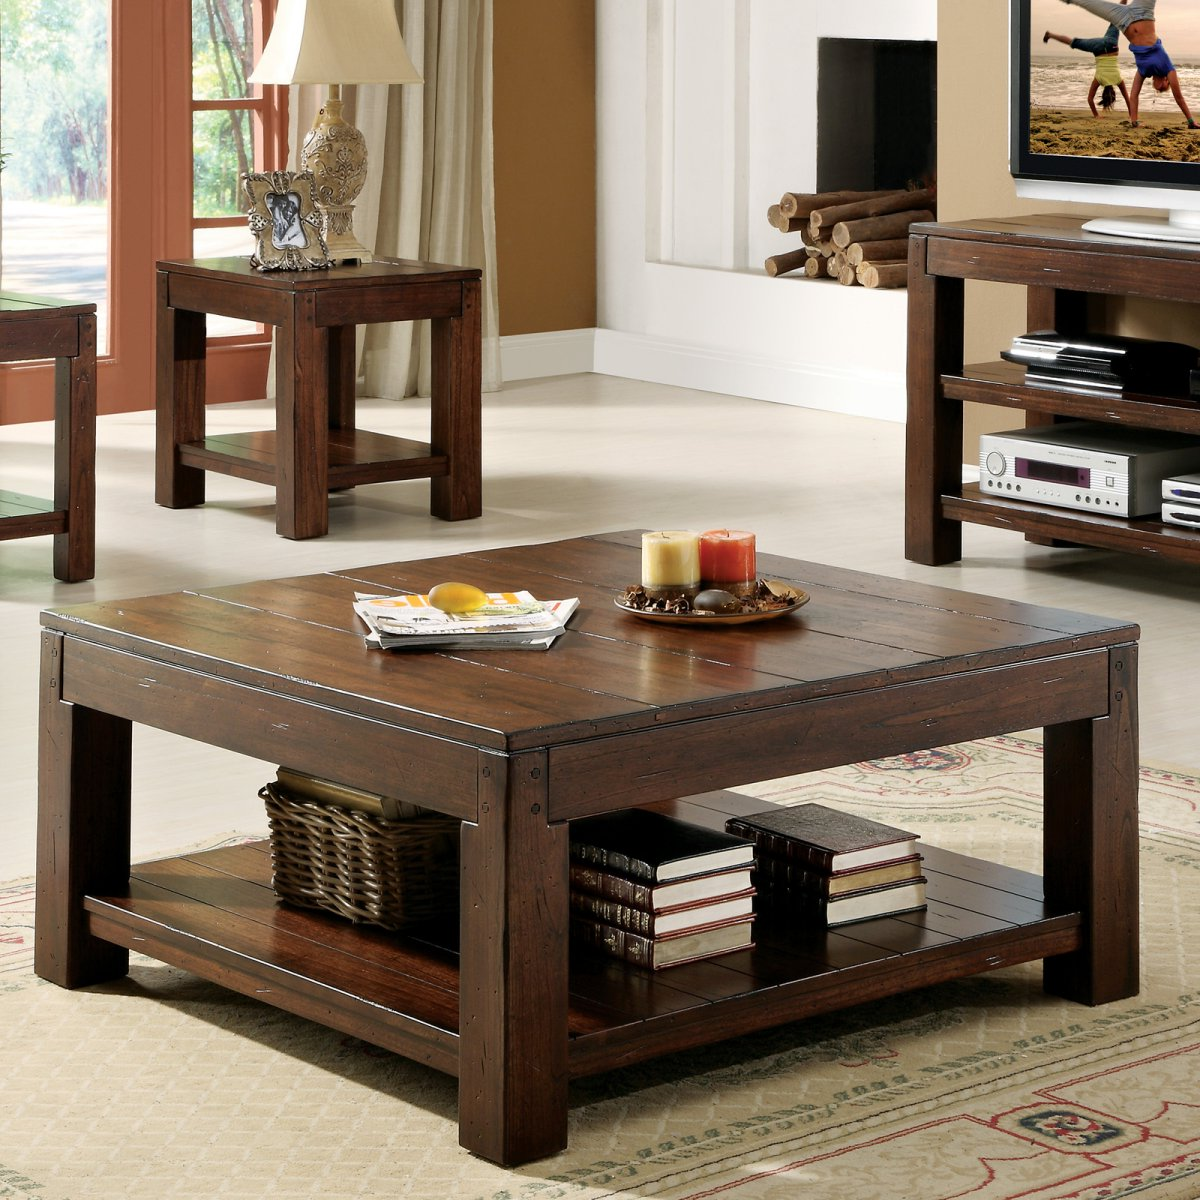 Living Room Furniture Sets Under